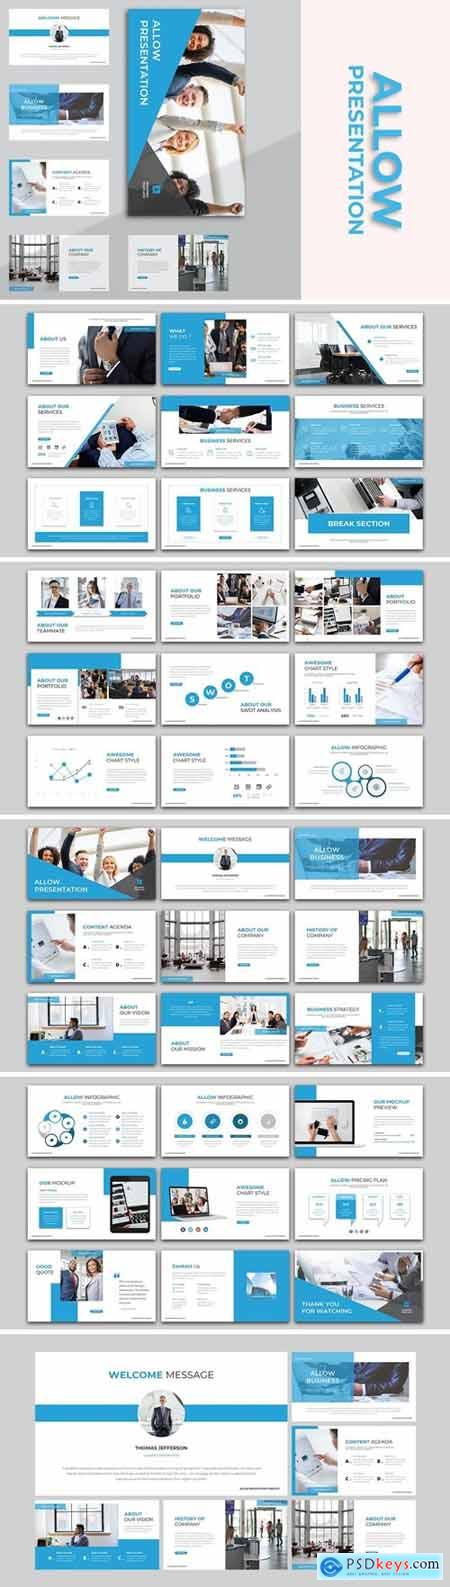 Allow - Business Powerpoint, Keynote and Google Slides Templates